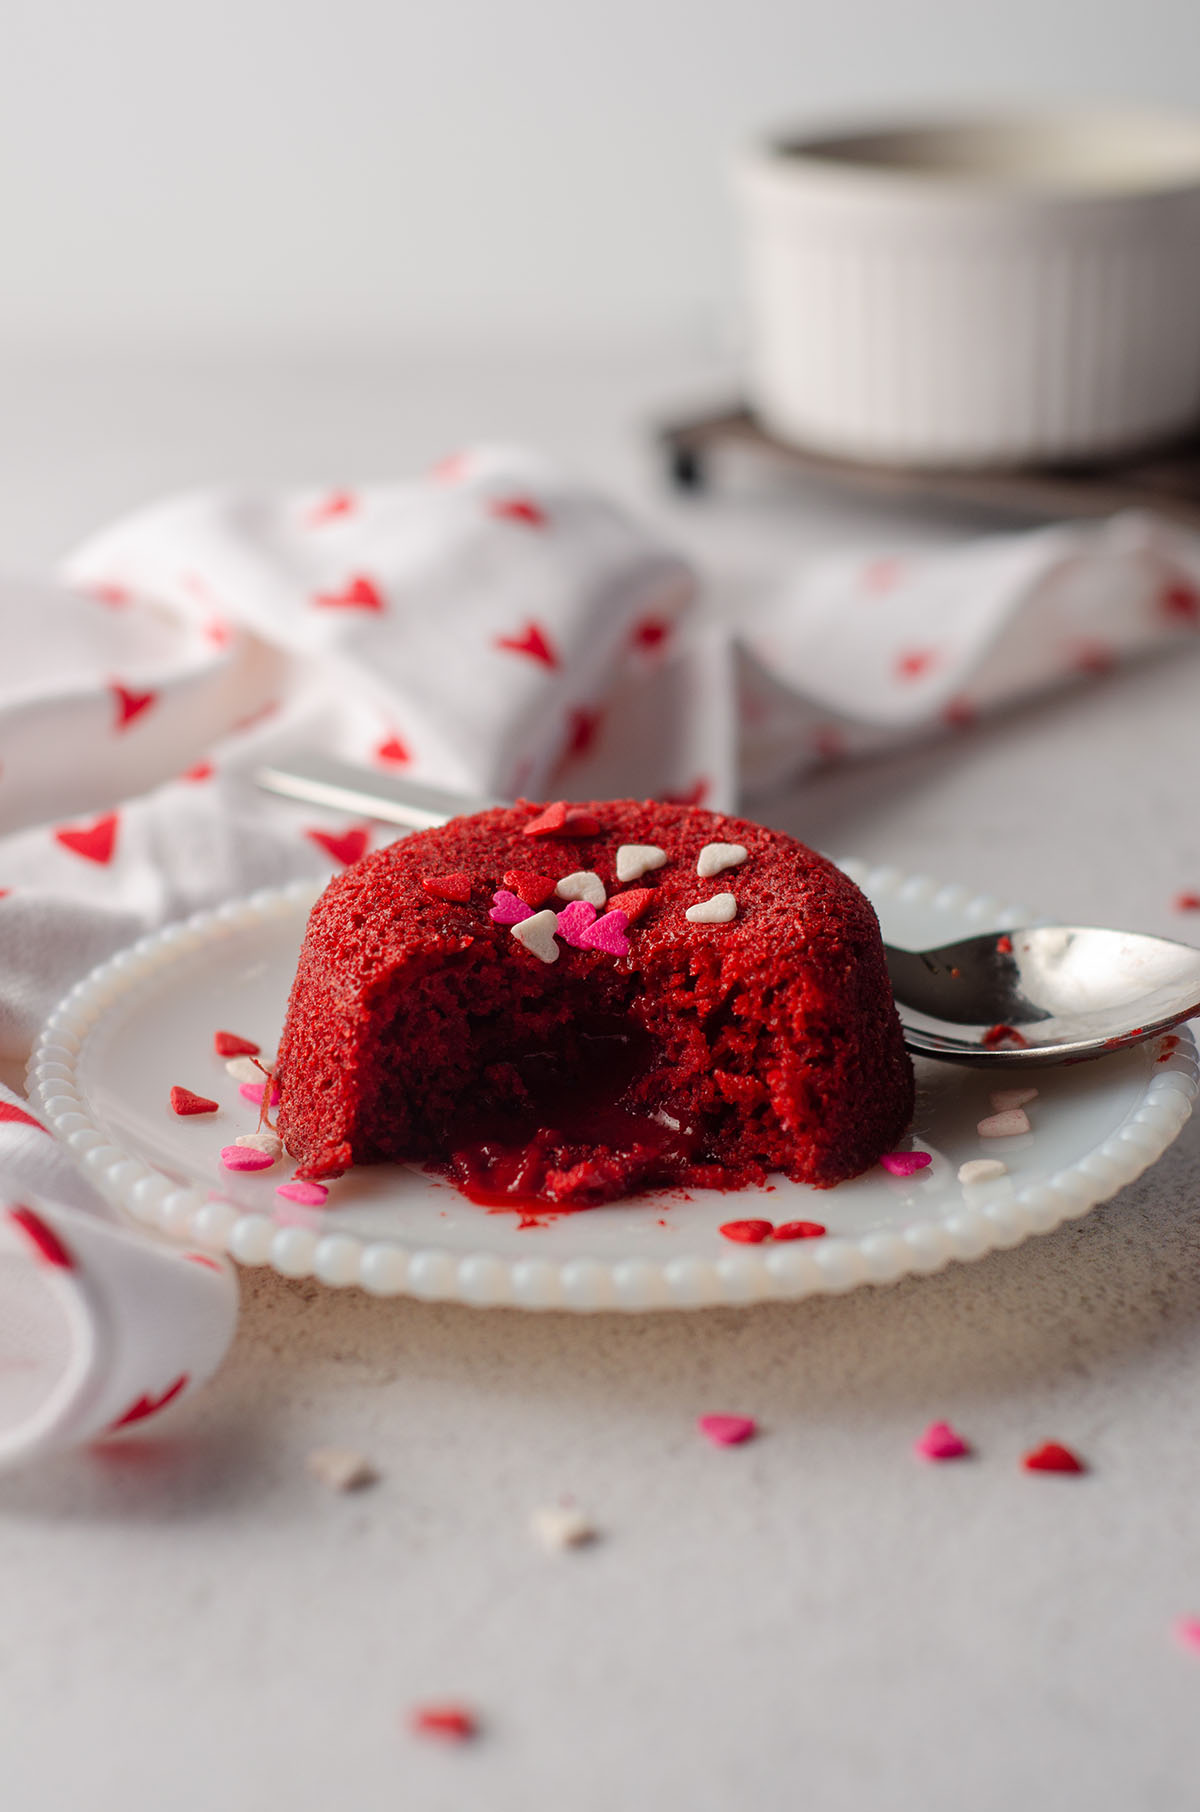 red velvet lava cake sitting on a white plate with heart sprinkles on top of it